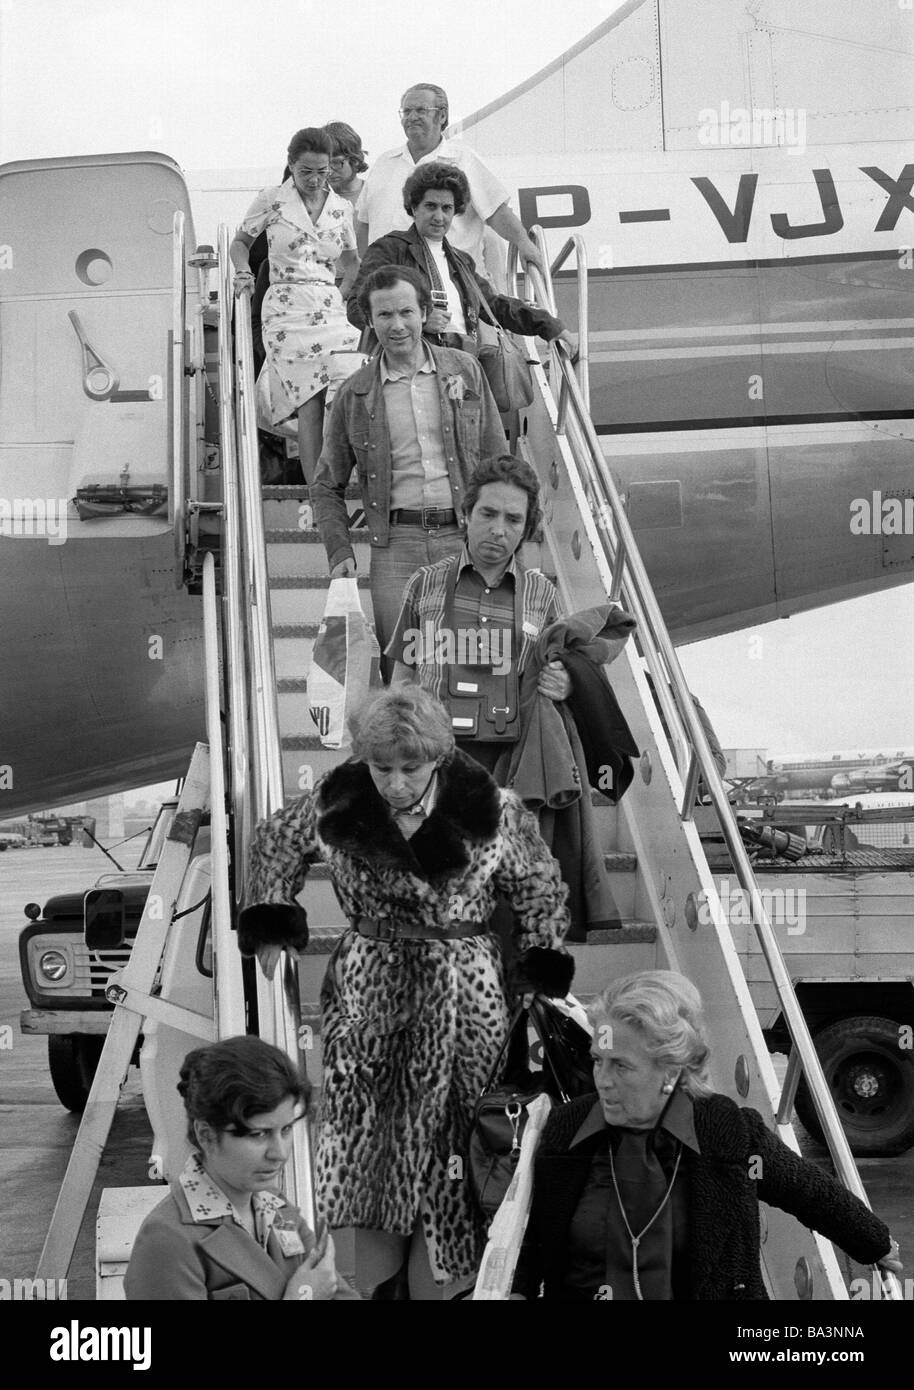 Seventies, black and white photo, airport Rio de Janeiro, airline passengers leave the airplane on the gangway, - Stock Image